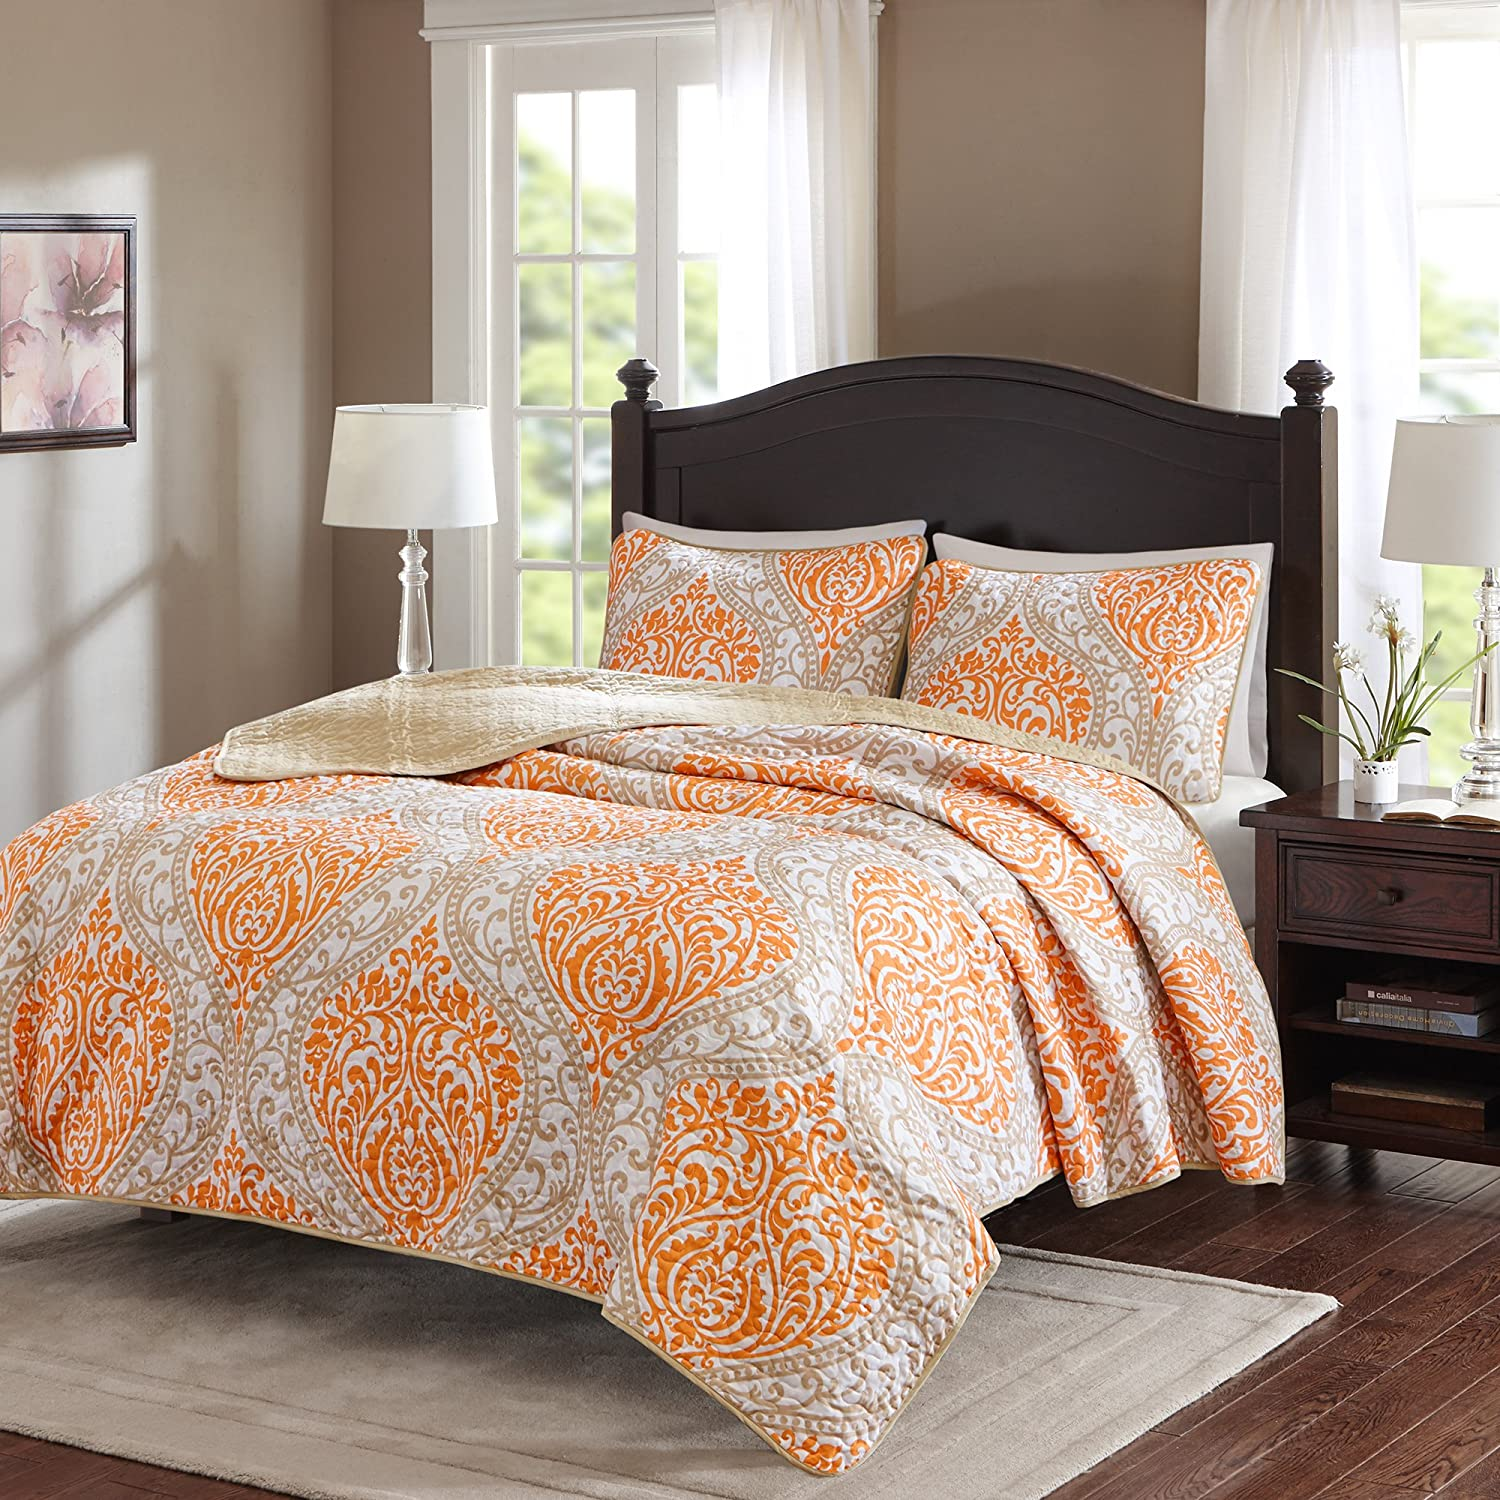 Comfort Spaces – Coco Mini Quilt Set - 3 Piece – Orange and Taupe